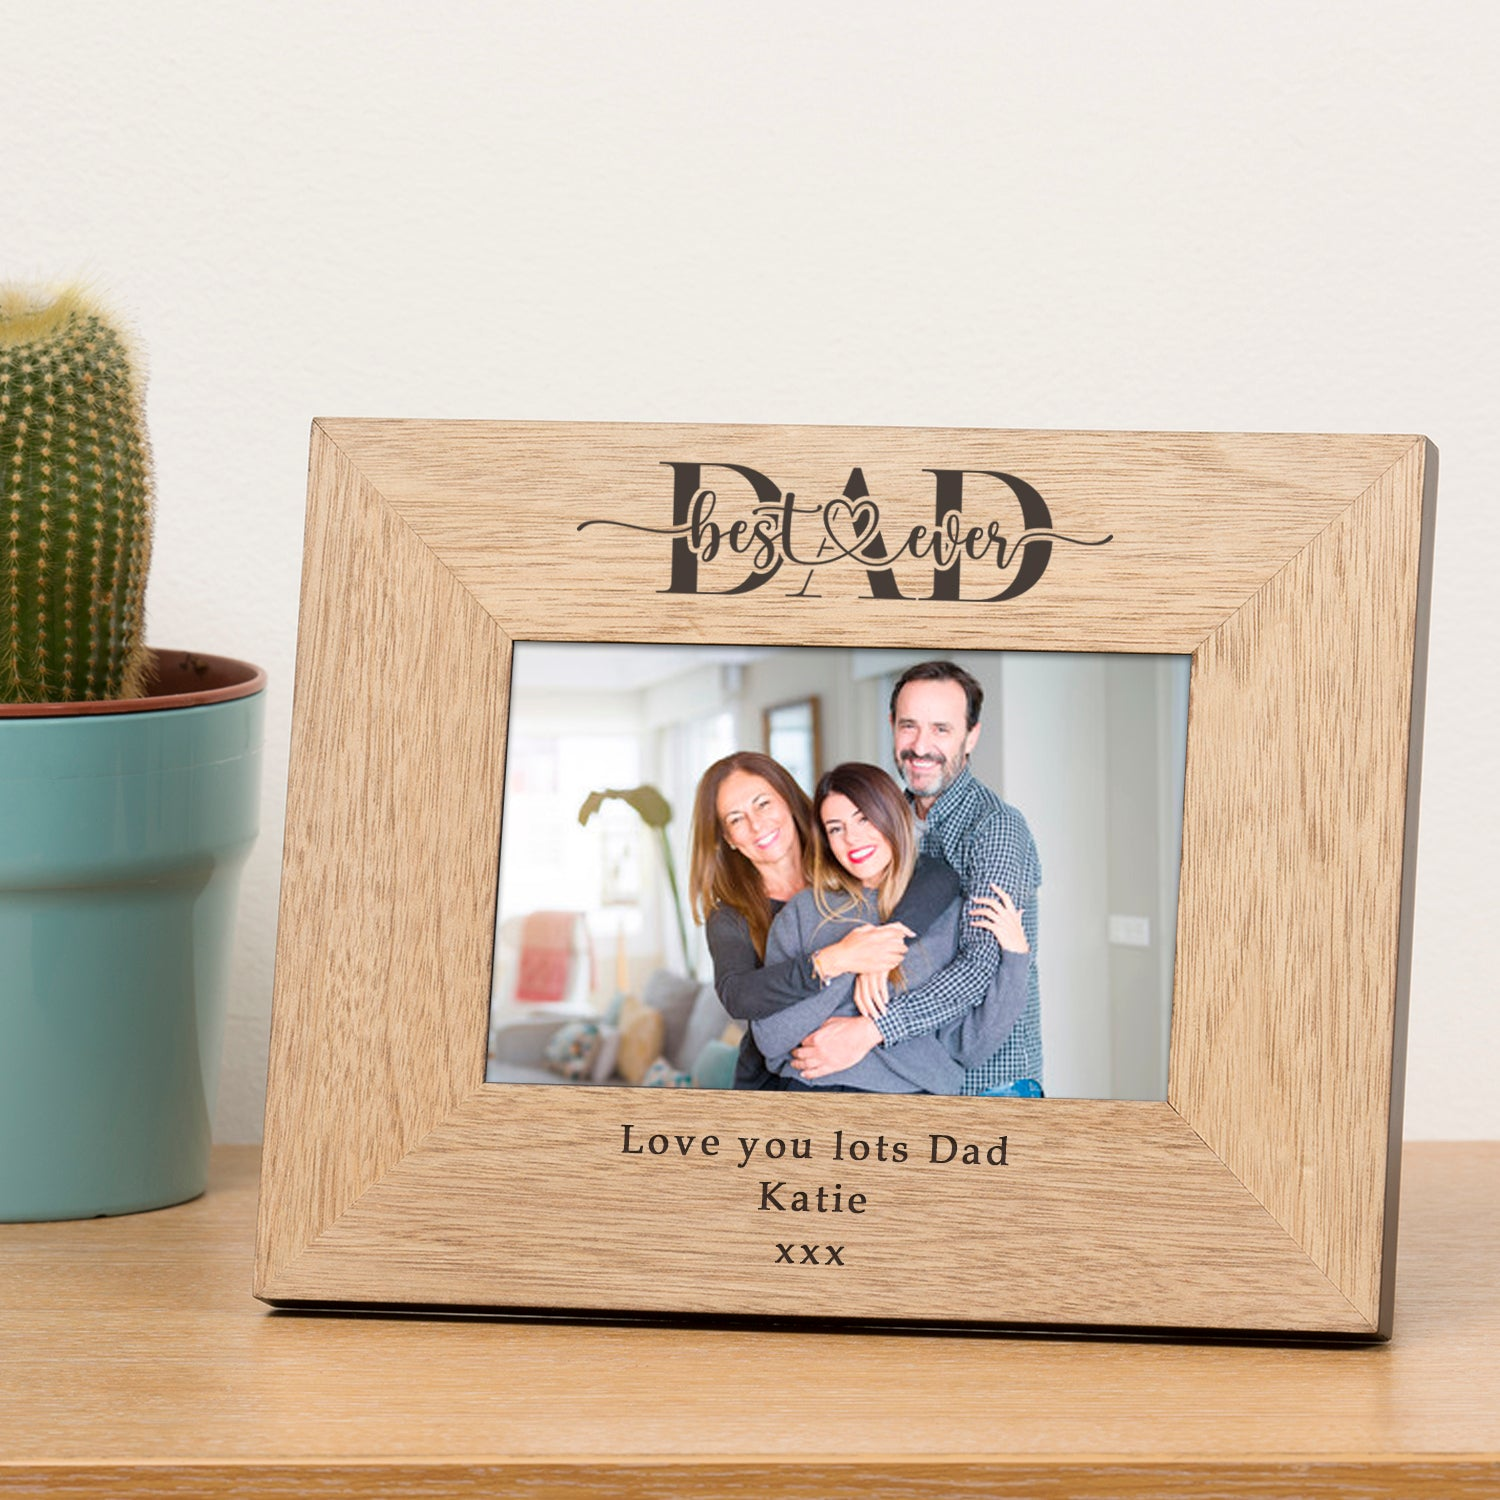 Personalised Best Ever Dad / Daddy Wood Frame 7x5, Home & Garden by Low Cost Gifts